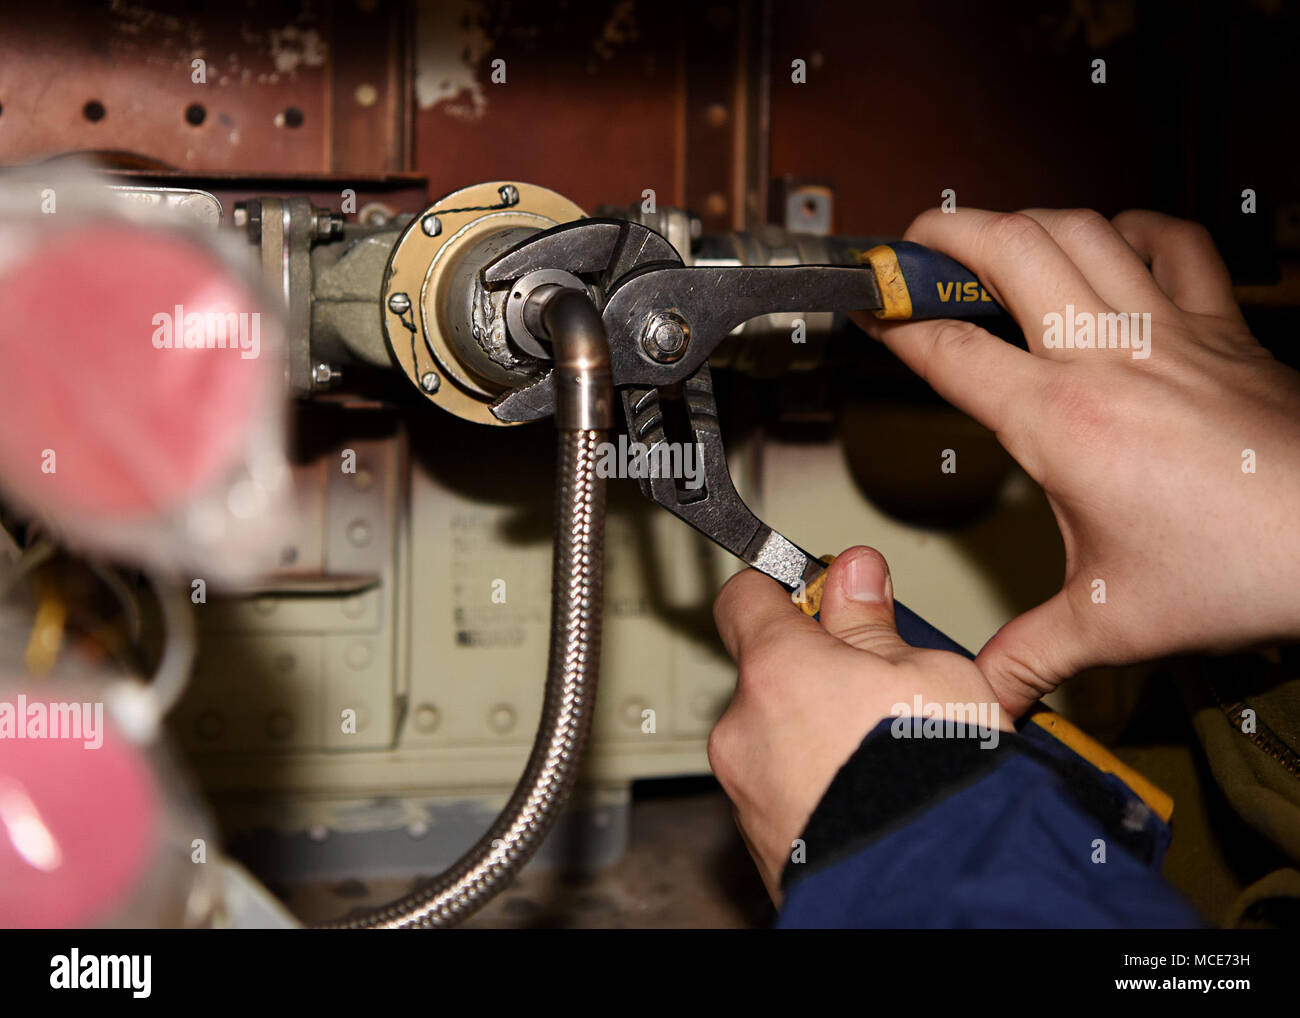 Conduit Systems Stock Photos & Conduit Systems Stock Images - Alamy